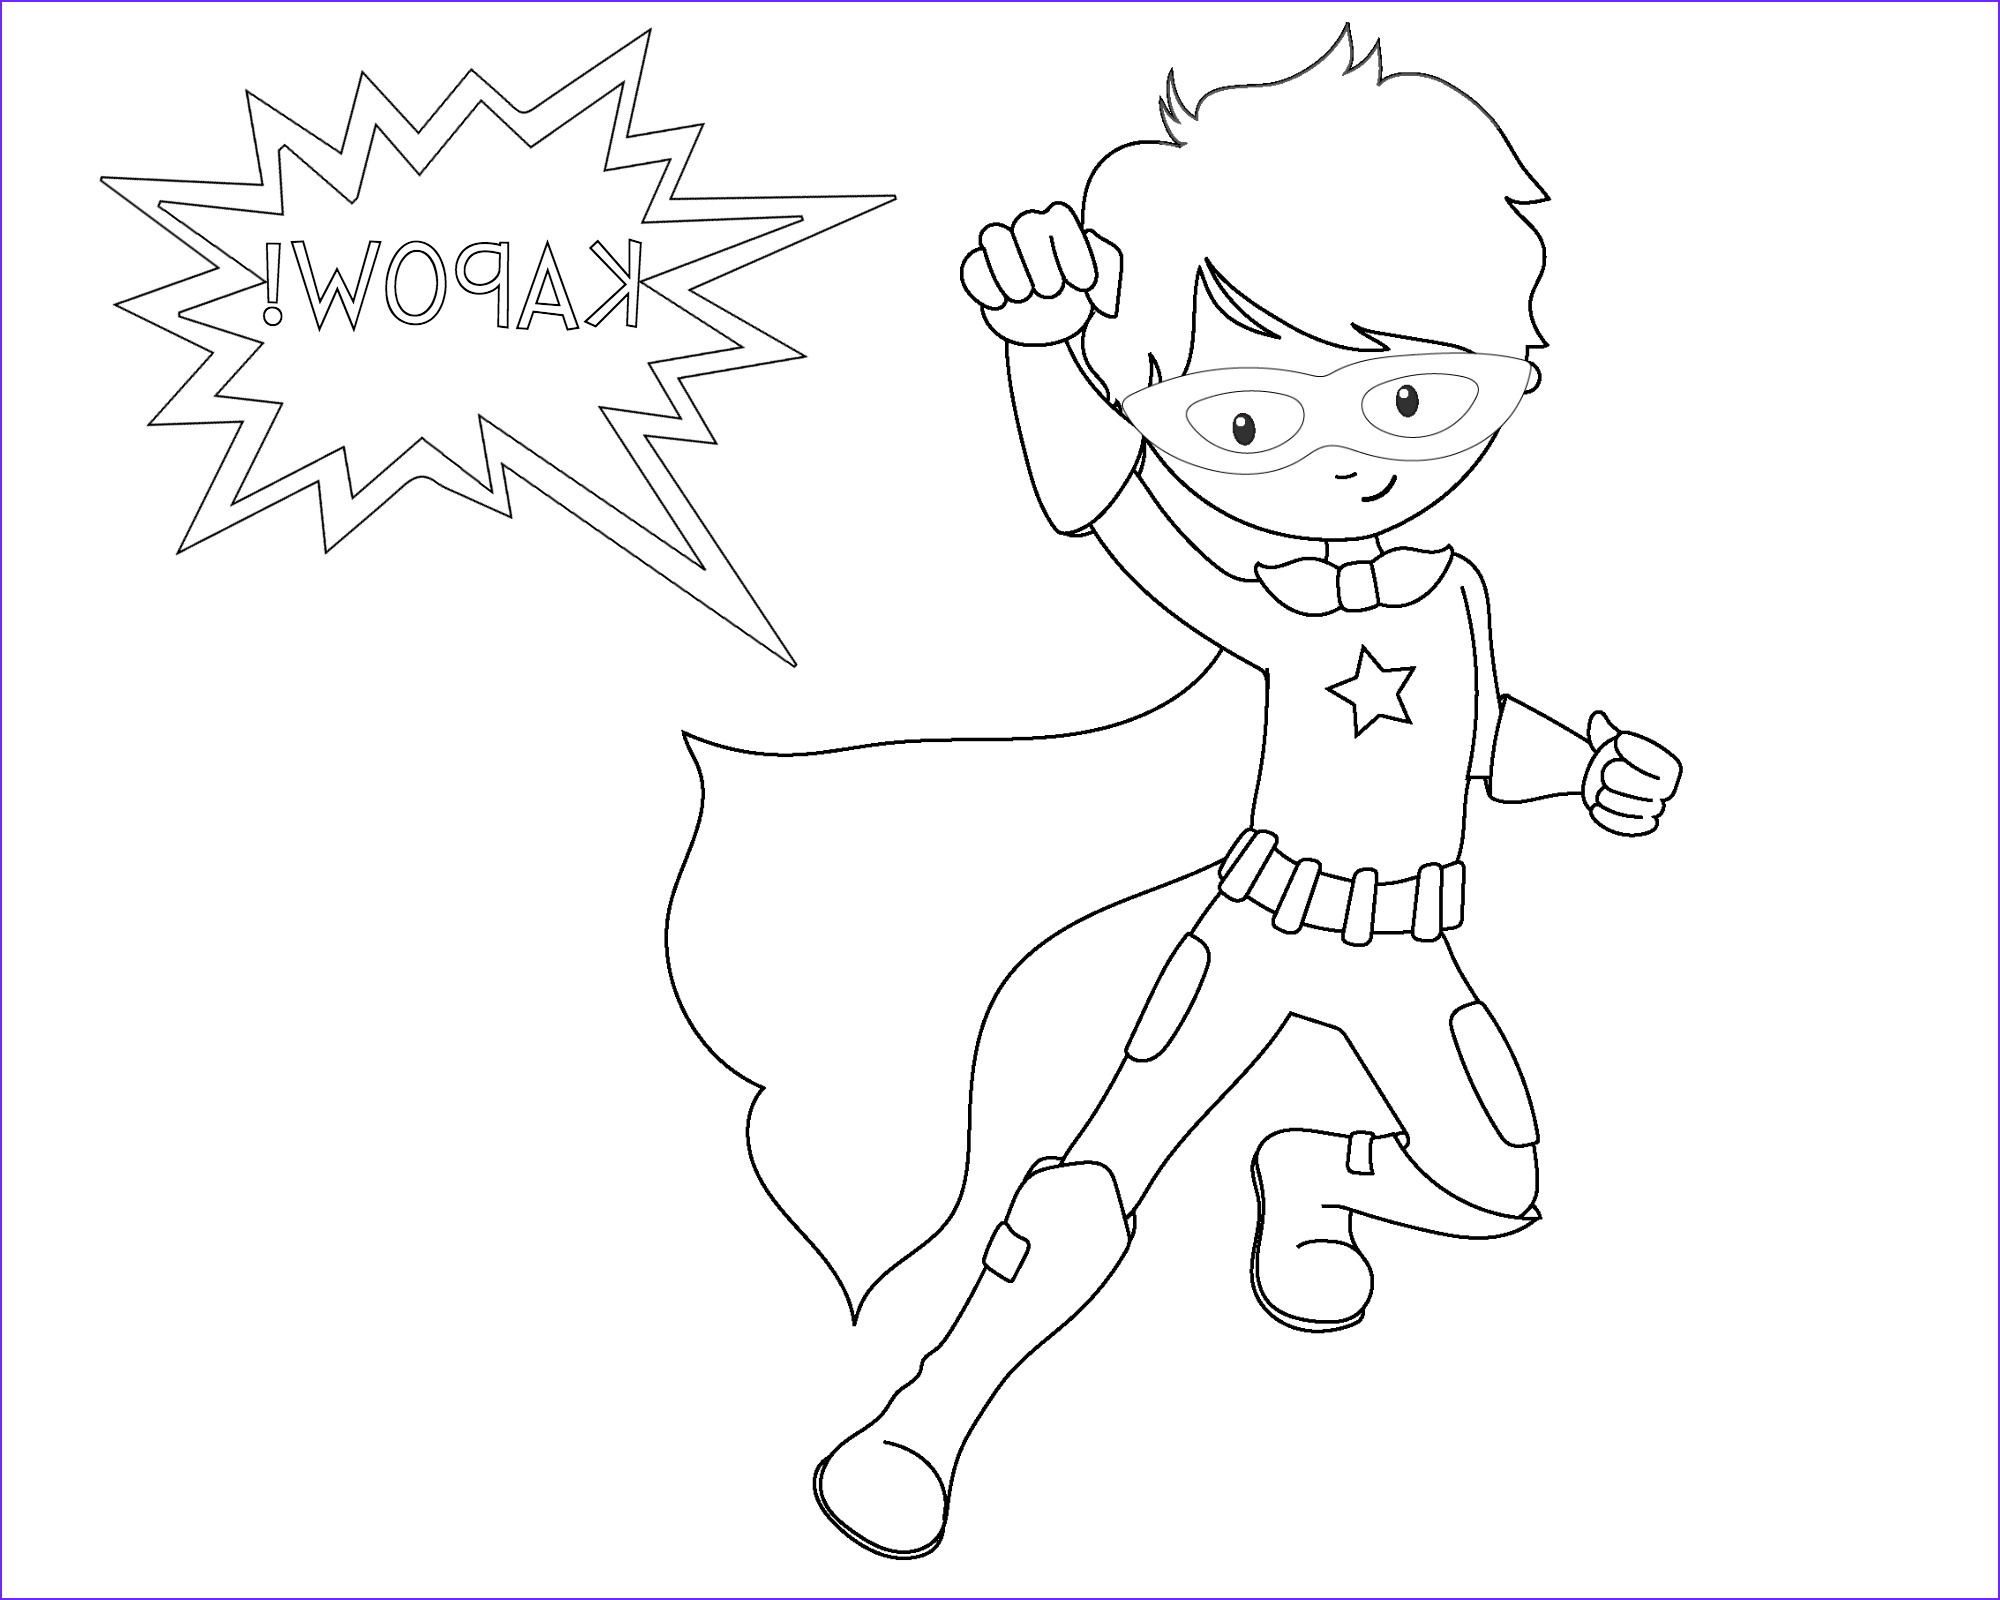 Free Printable Superhero Coloring Sheets for Kids Crazy